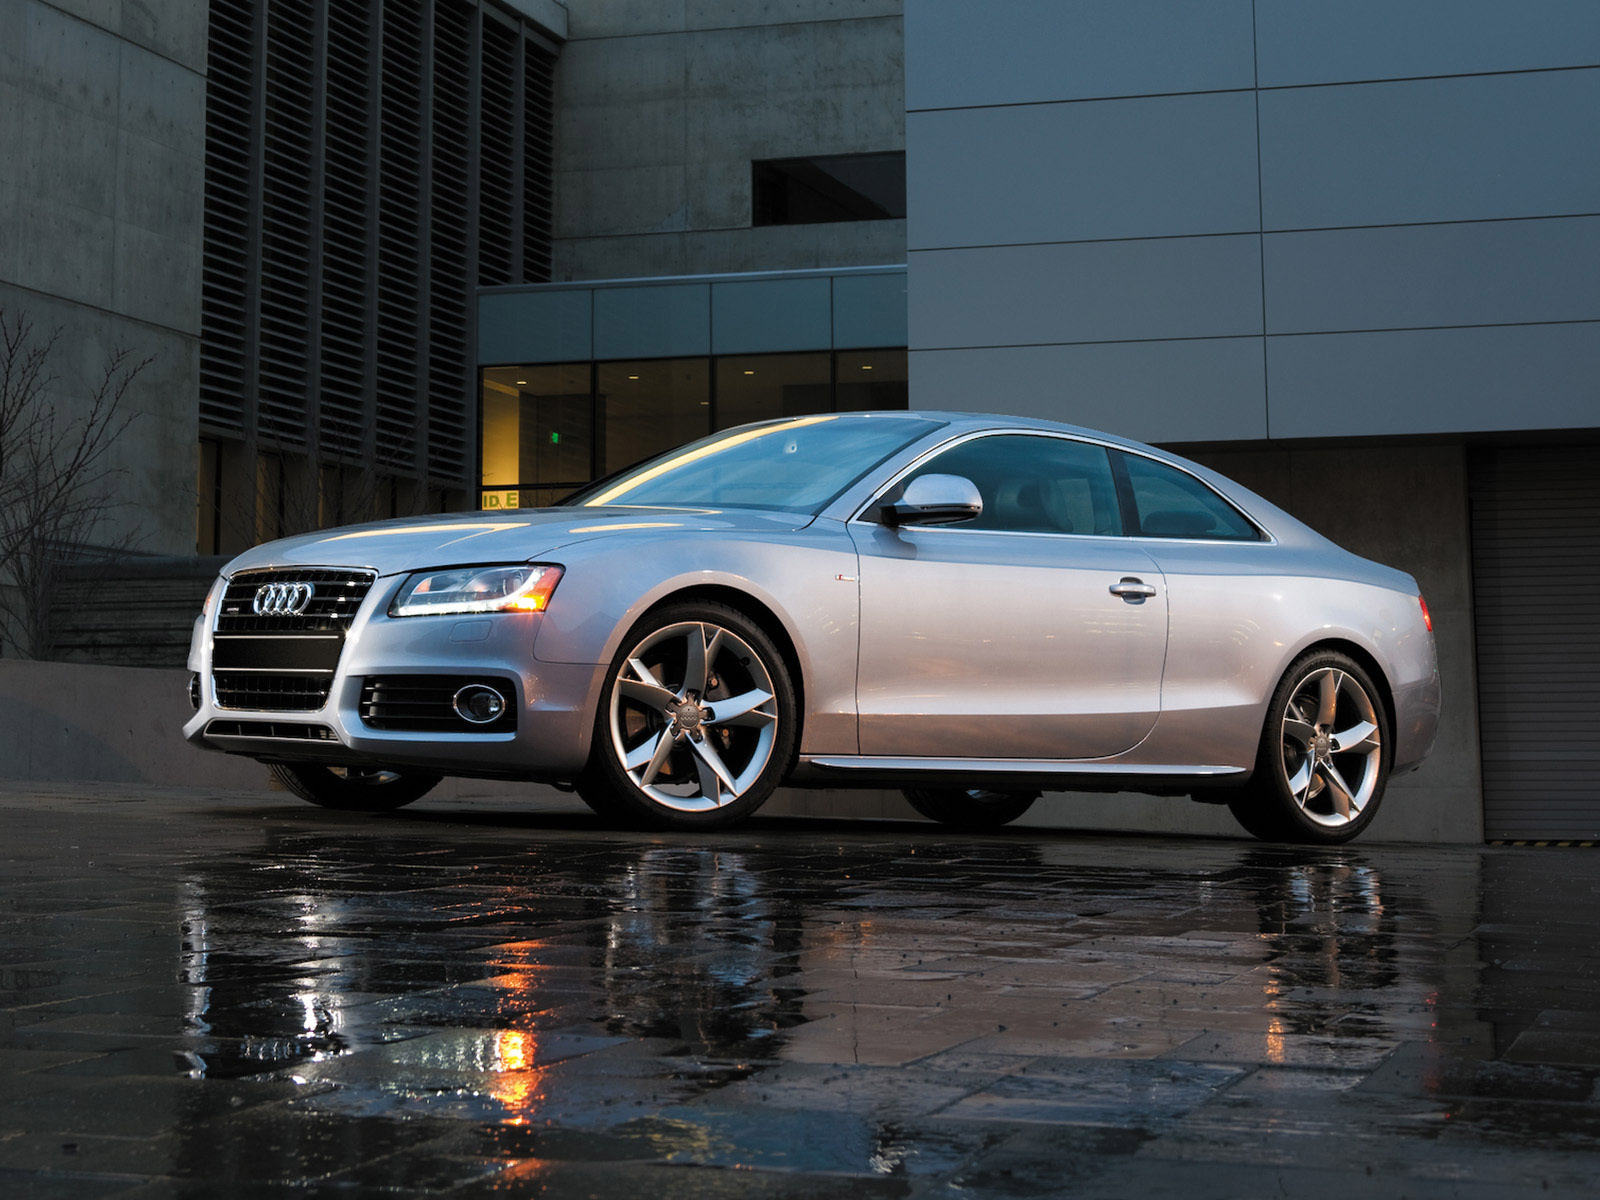 audi a5 s line usa 2008 audi a5 s line usa 2008 photo 03. Black Bedroom Furniture Sets. Home Design Ideas